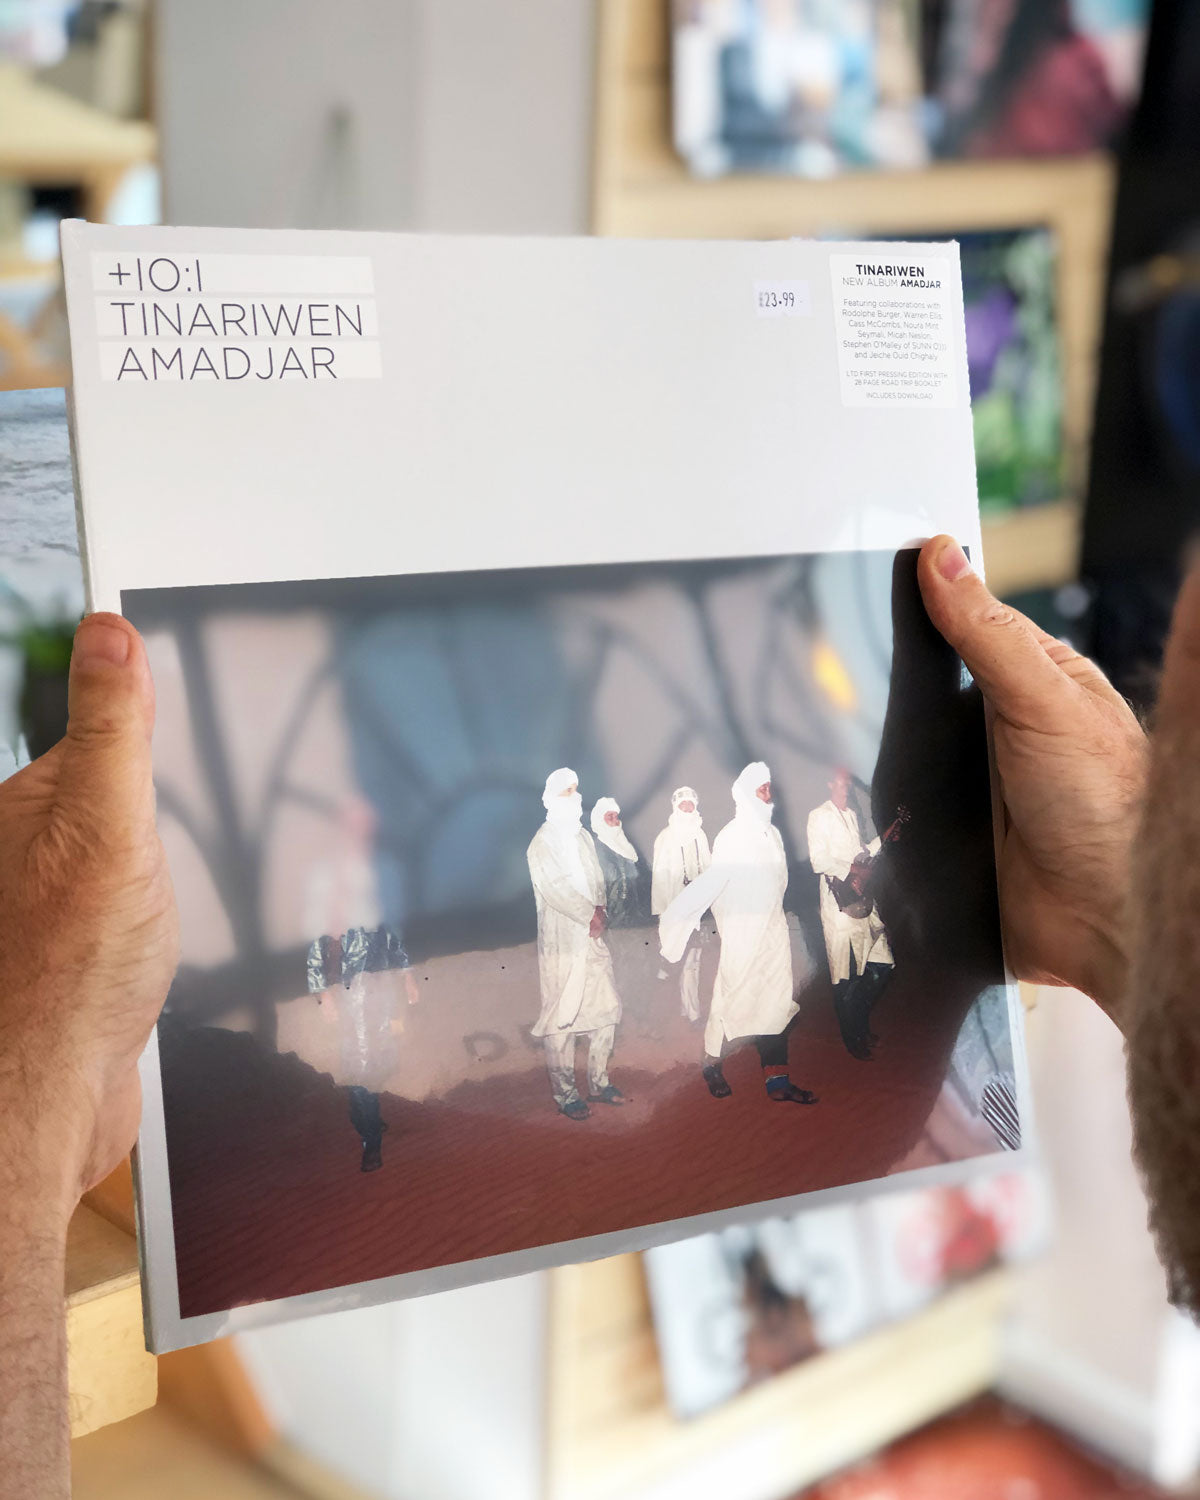 ROTW: Tinariwen, Bat For Lashes, Kindness, Frankie Cosmos and Iggy Pop.